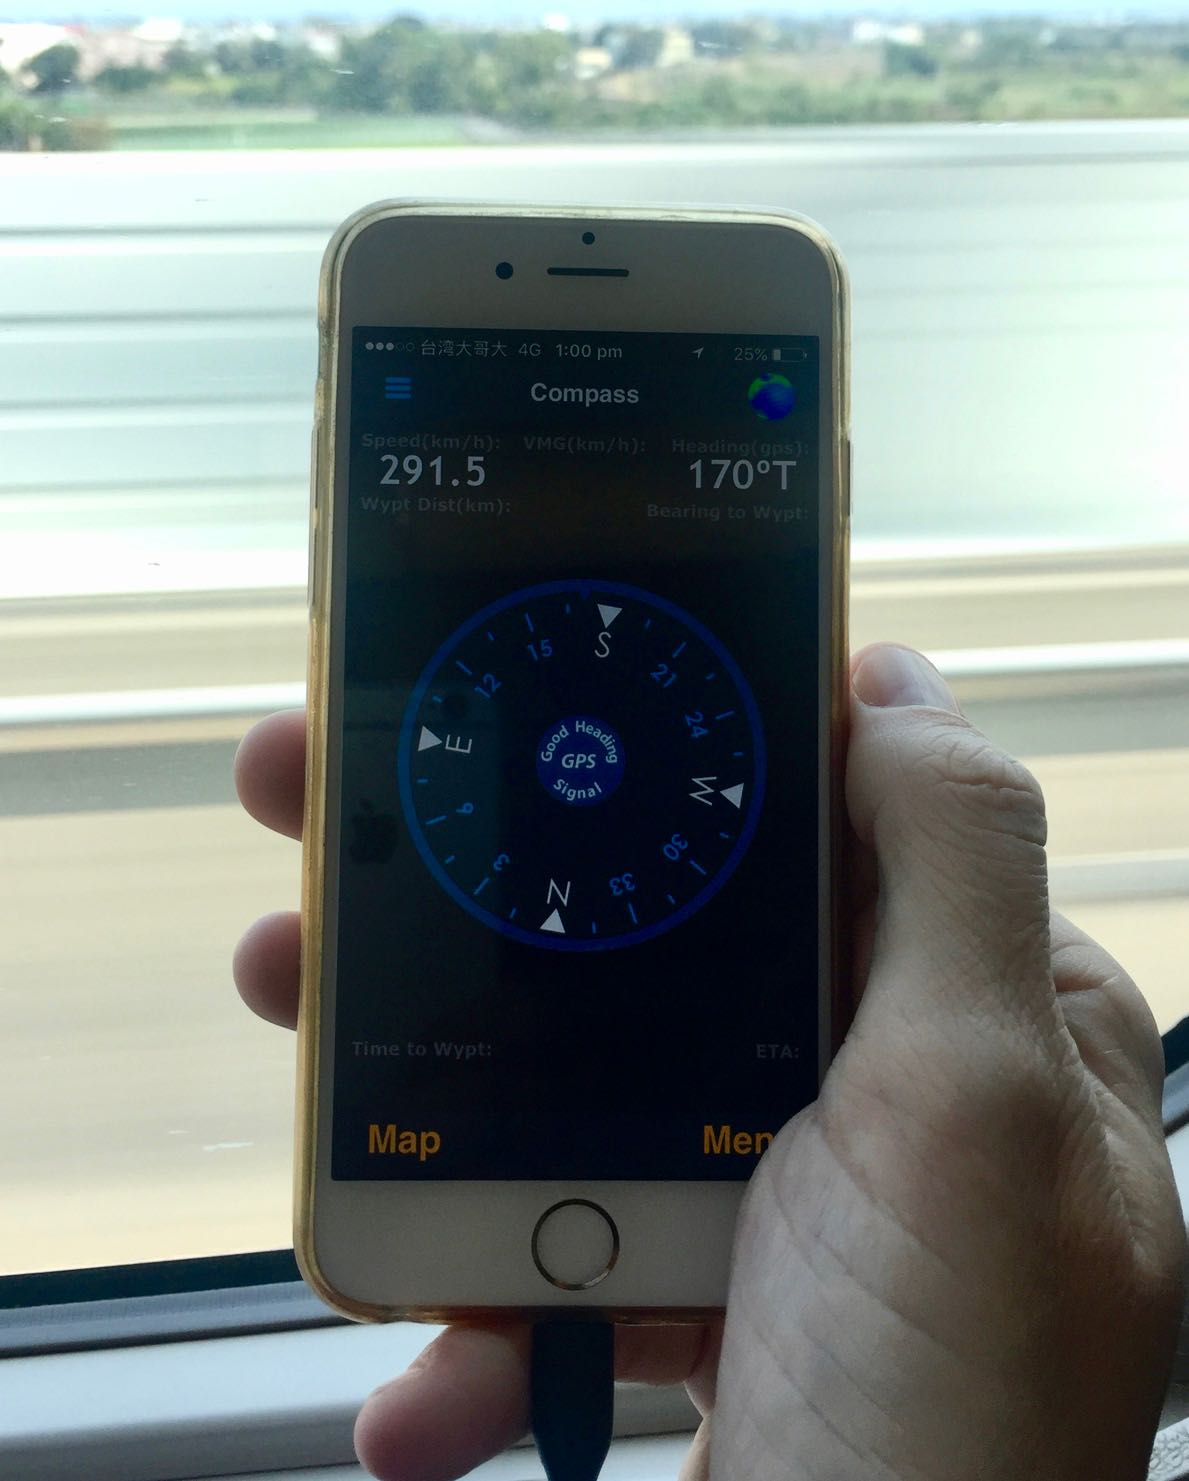 phone showing speed of taiwain high speed rail between Taichung and Kaohsiung